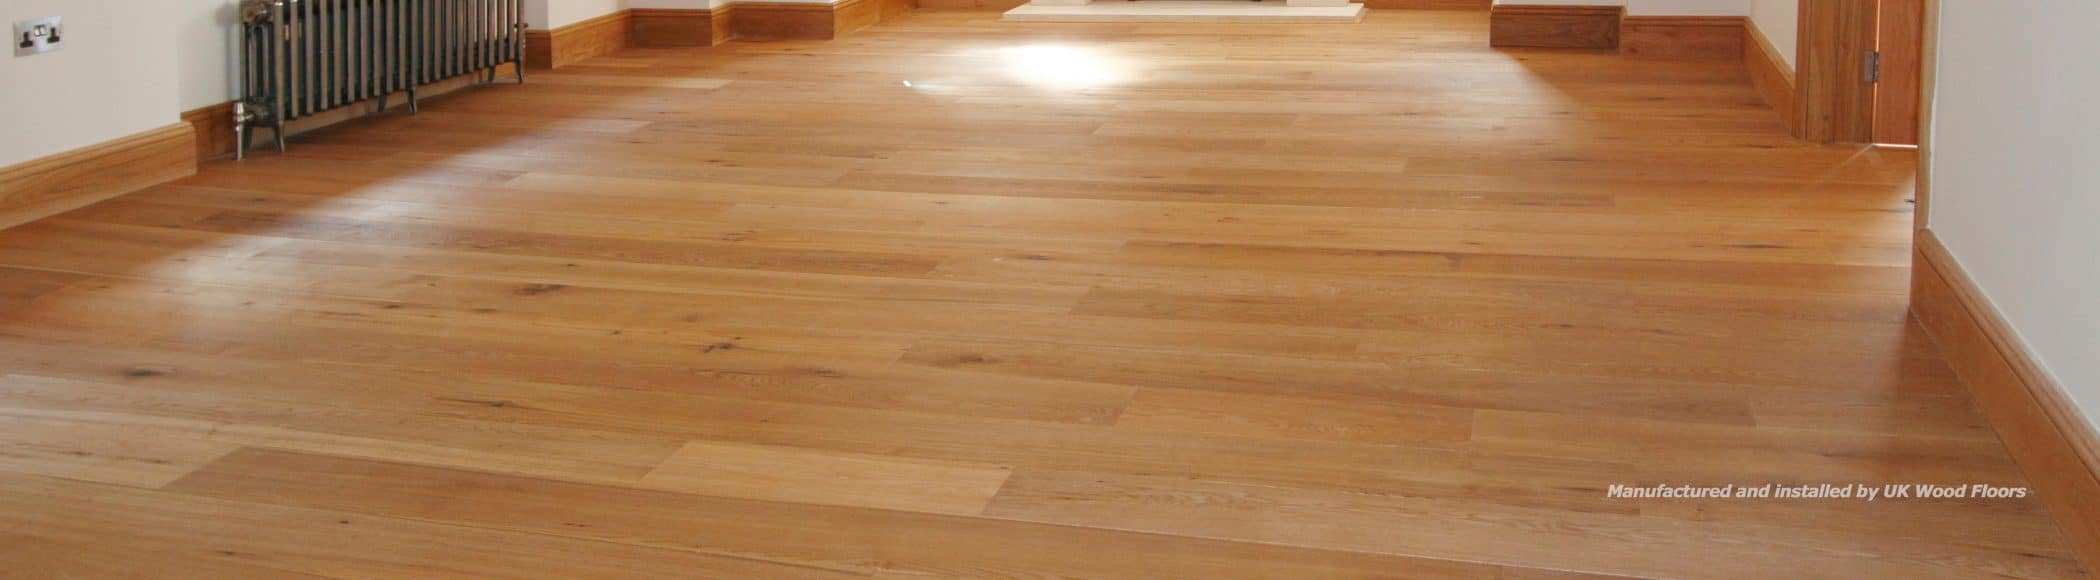 The Essential Guide to Wood Floor Grades and Finishes